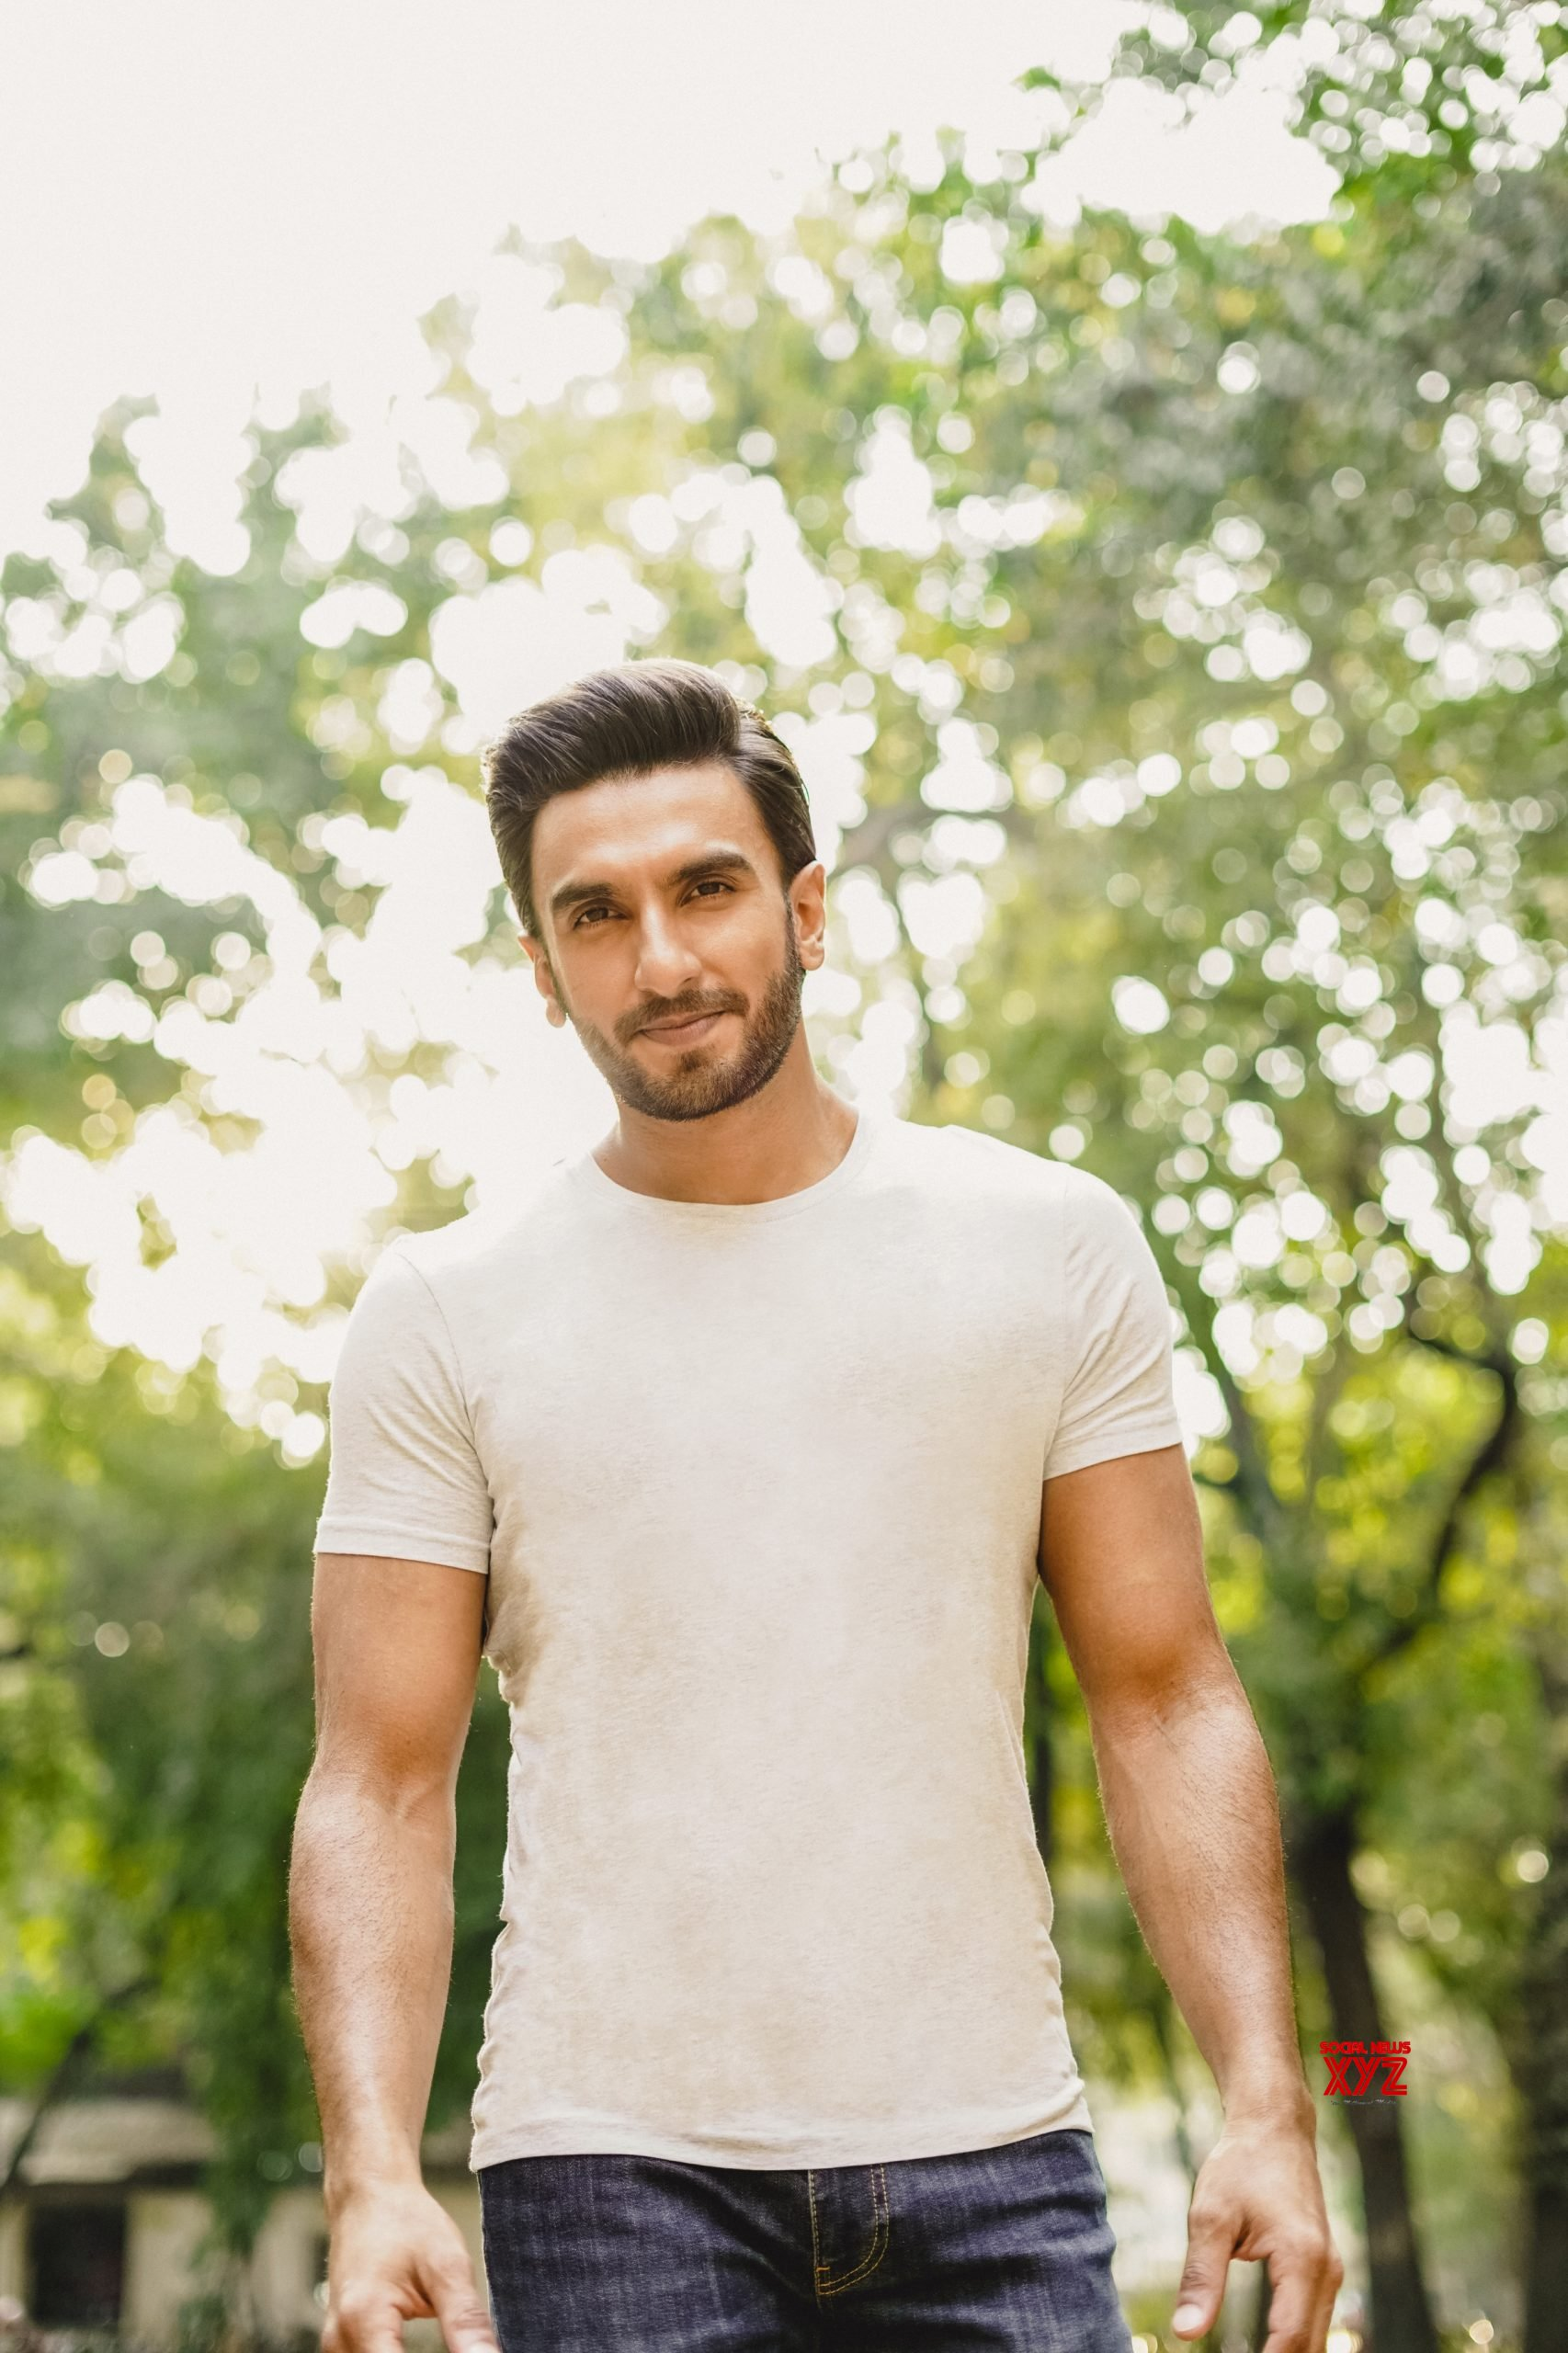 'I want to be remembered as an entertainer' : says superstar Ranveer Singh, as he completes a decade in the Hindi film industry